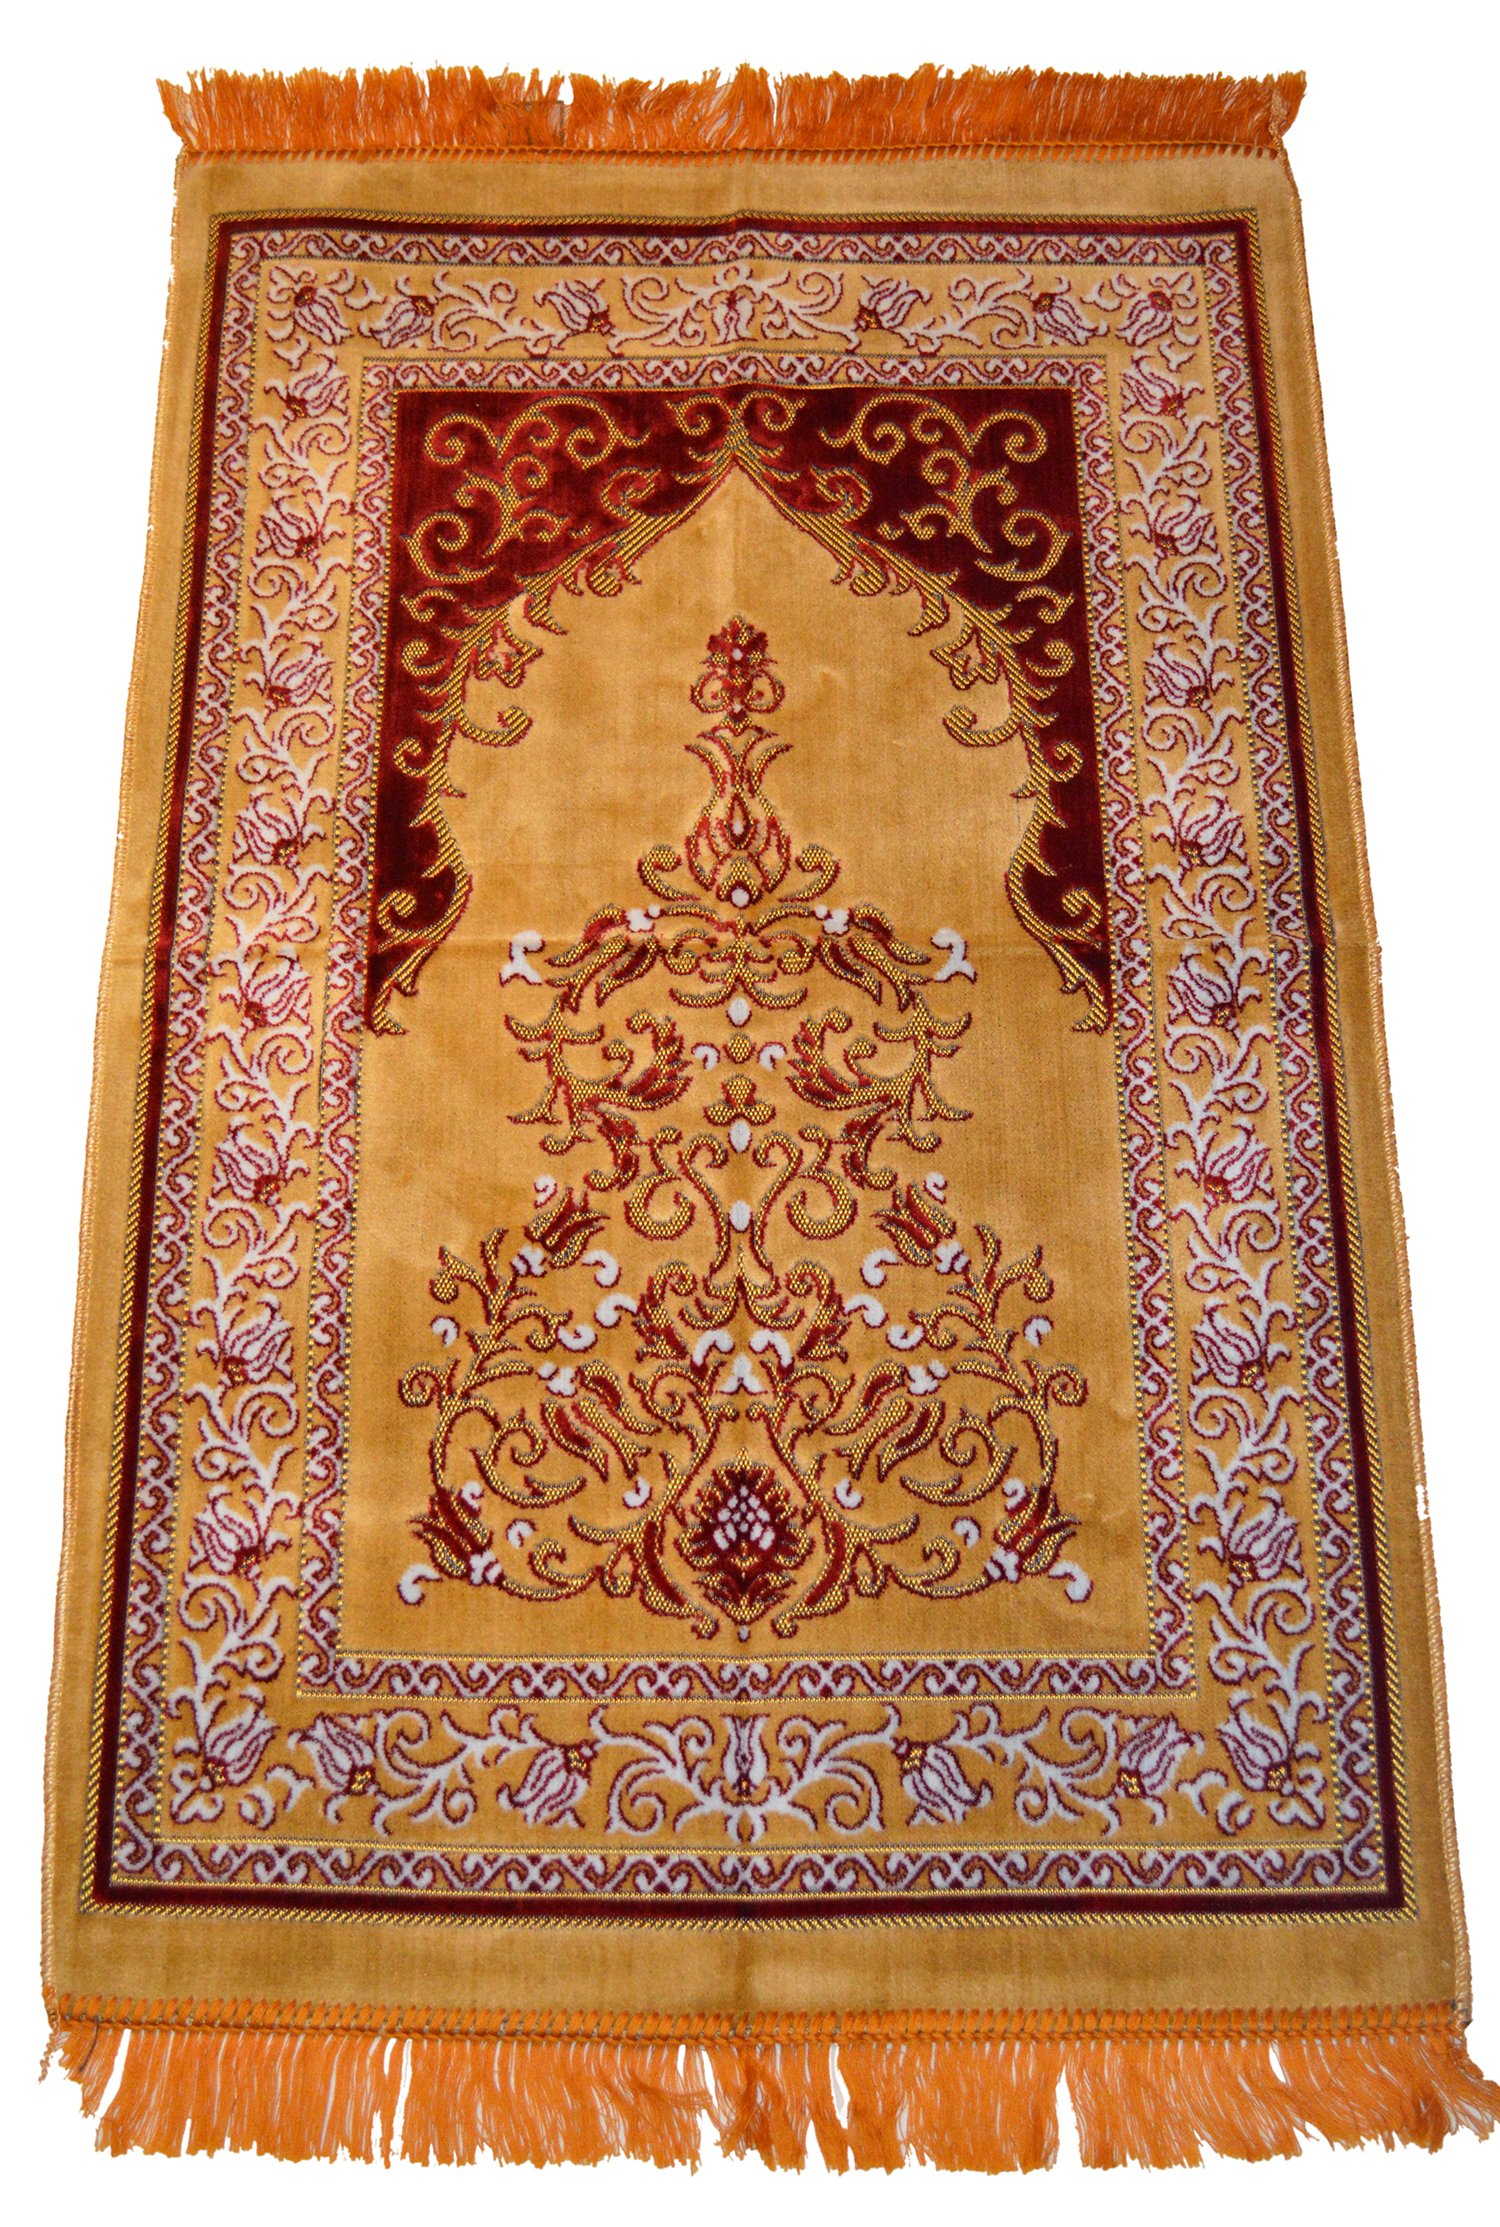 Prayer Rug Carpet Islamic Muslim Salah Meditation Mat Turkish Exquisite High Quality Beige